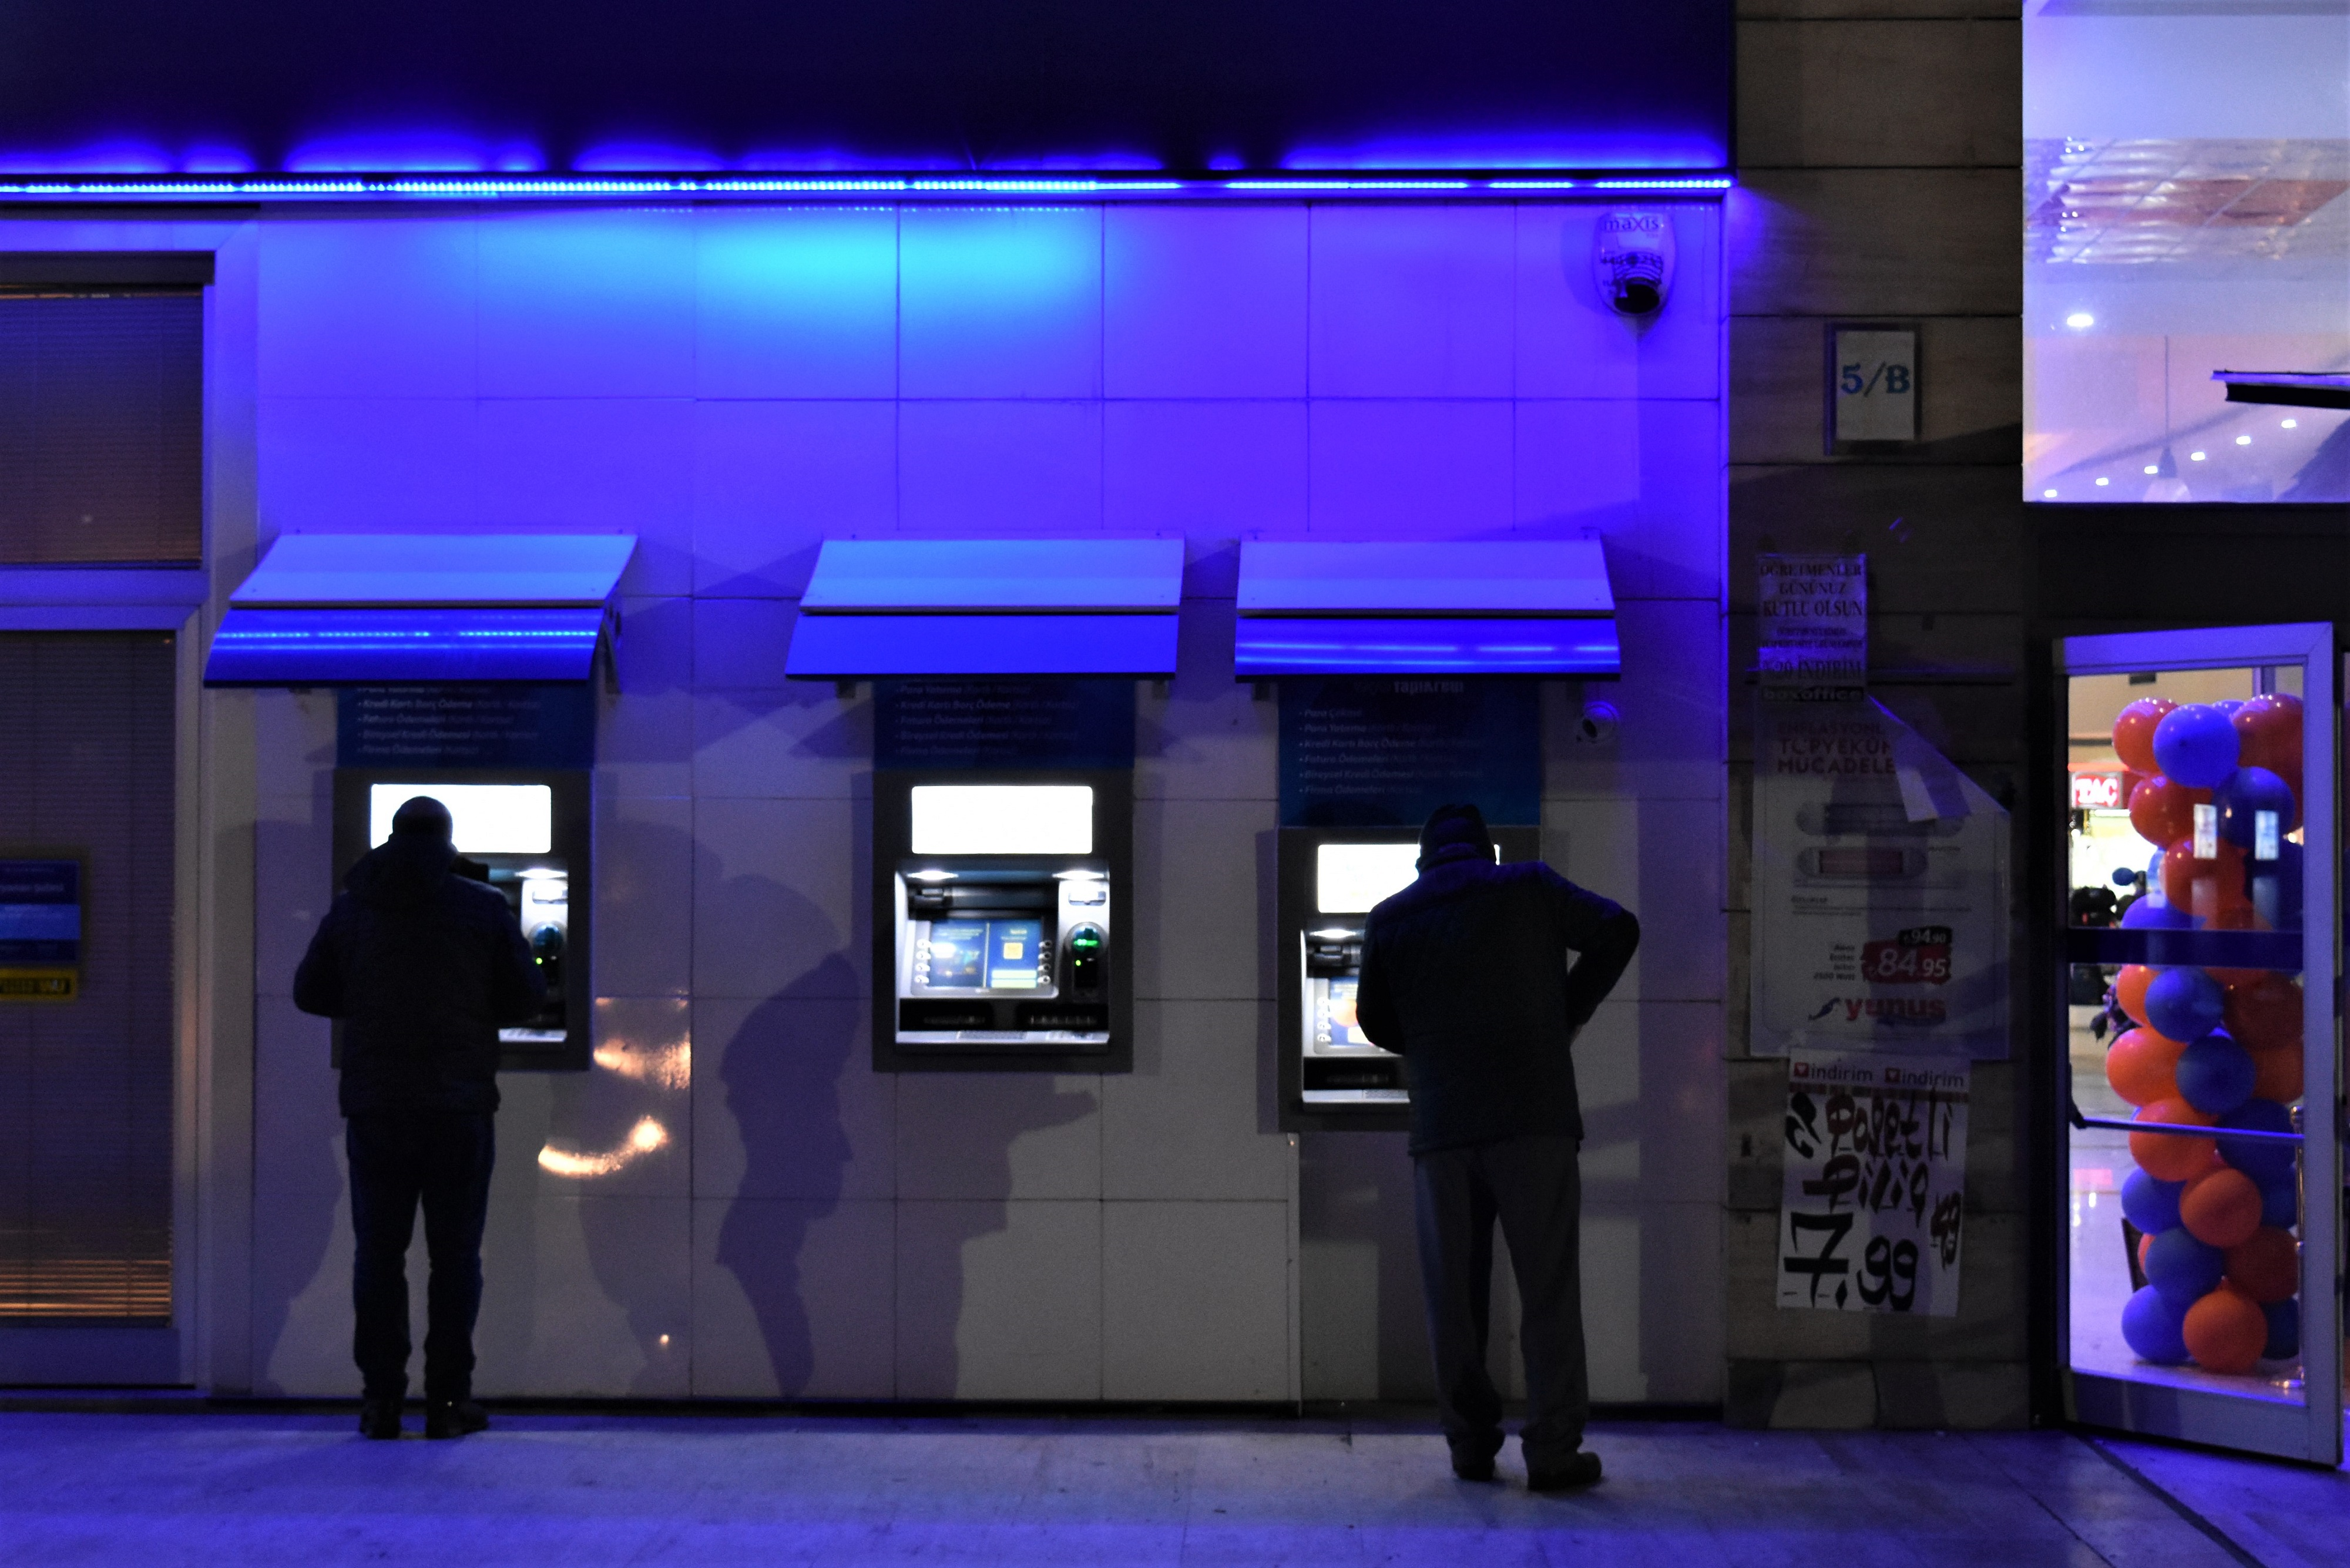 People use an ATM machine in Ankara, Turkey on December 27, 2018. A year is passed under economic difficulties as part of high inflation rates and the Turkish lira's depreciation against foreign currencies since the first month of the year. Public and private sector employees with retirees are expecting a decent annual salary increase as the monthly minimum wage for 2019 has been raised to 2,020 Turkish liras (approximately 381 U.S. dollars), with an increase of 26.05 percent compared with the last year. However, the minimum wage decreased from 421 to 381 U.S. dollars comparing with the last year. (Photo by Altan Gocher/NurPhoto via Getty Images)